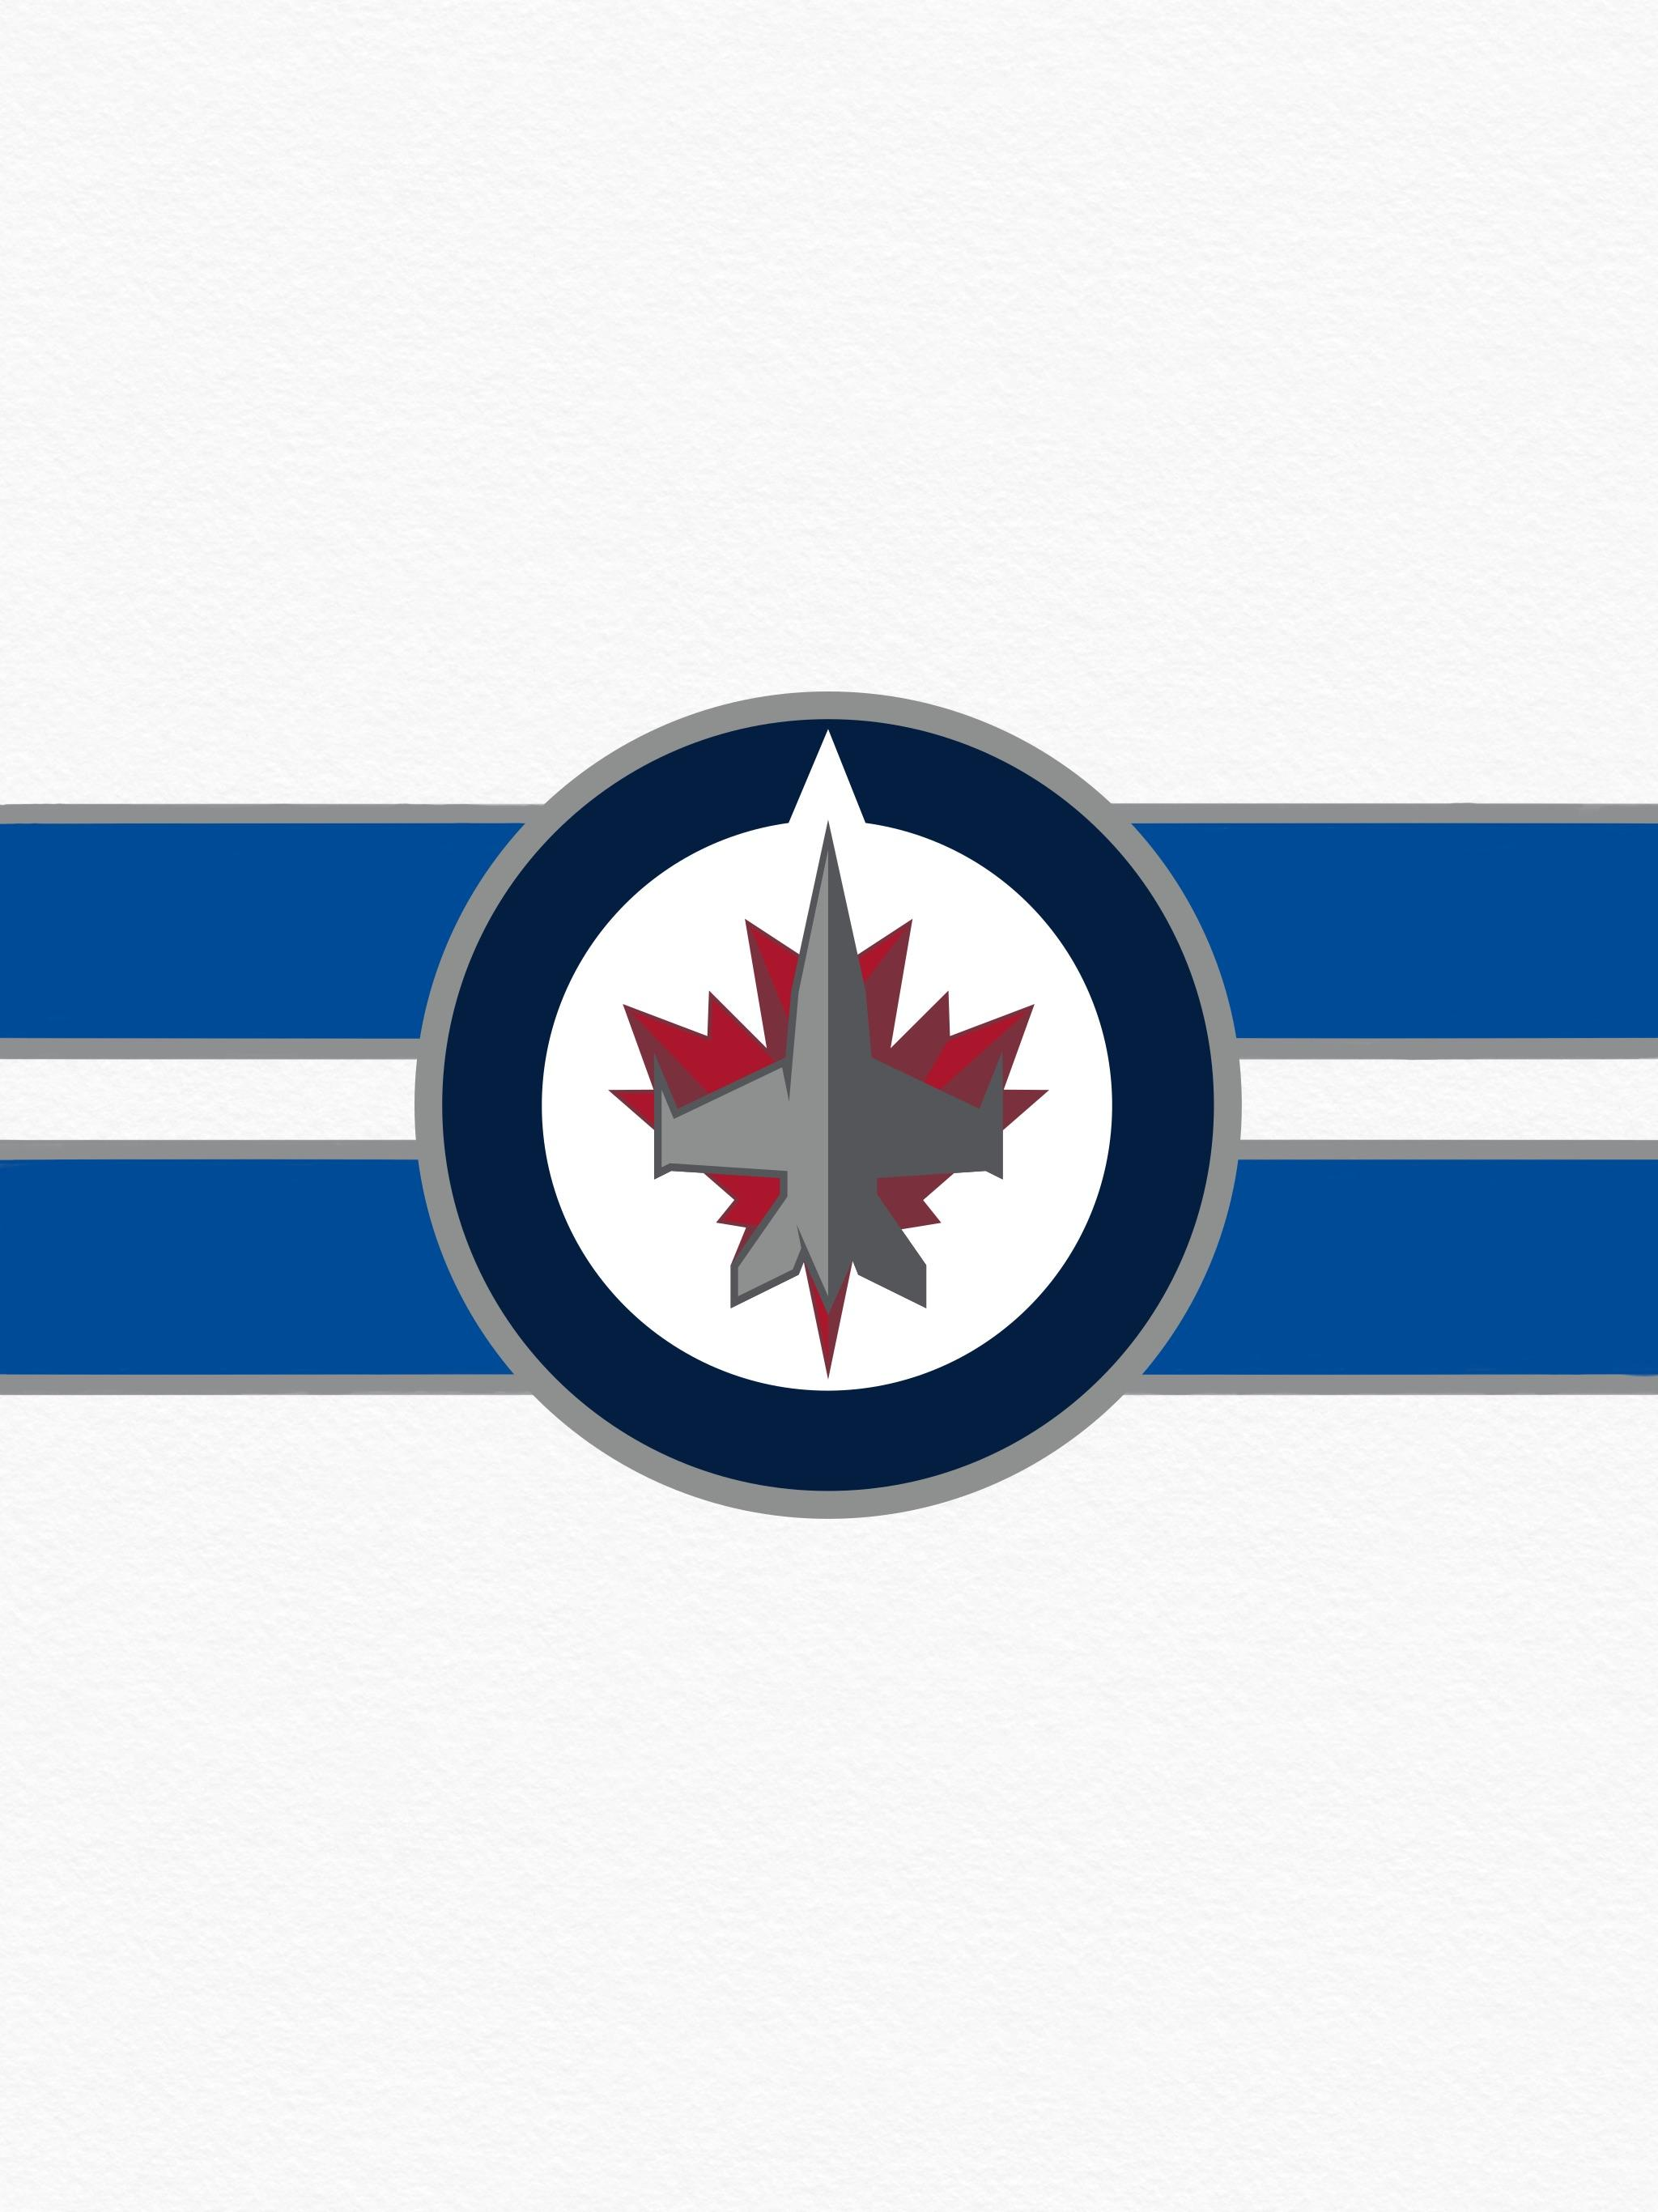 Made a whiteout wallpaper, figured I'd share it. GO JETS GO ...